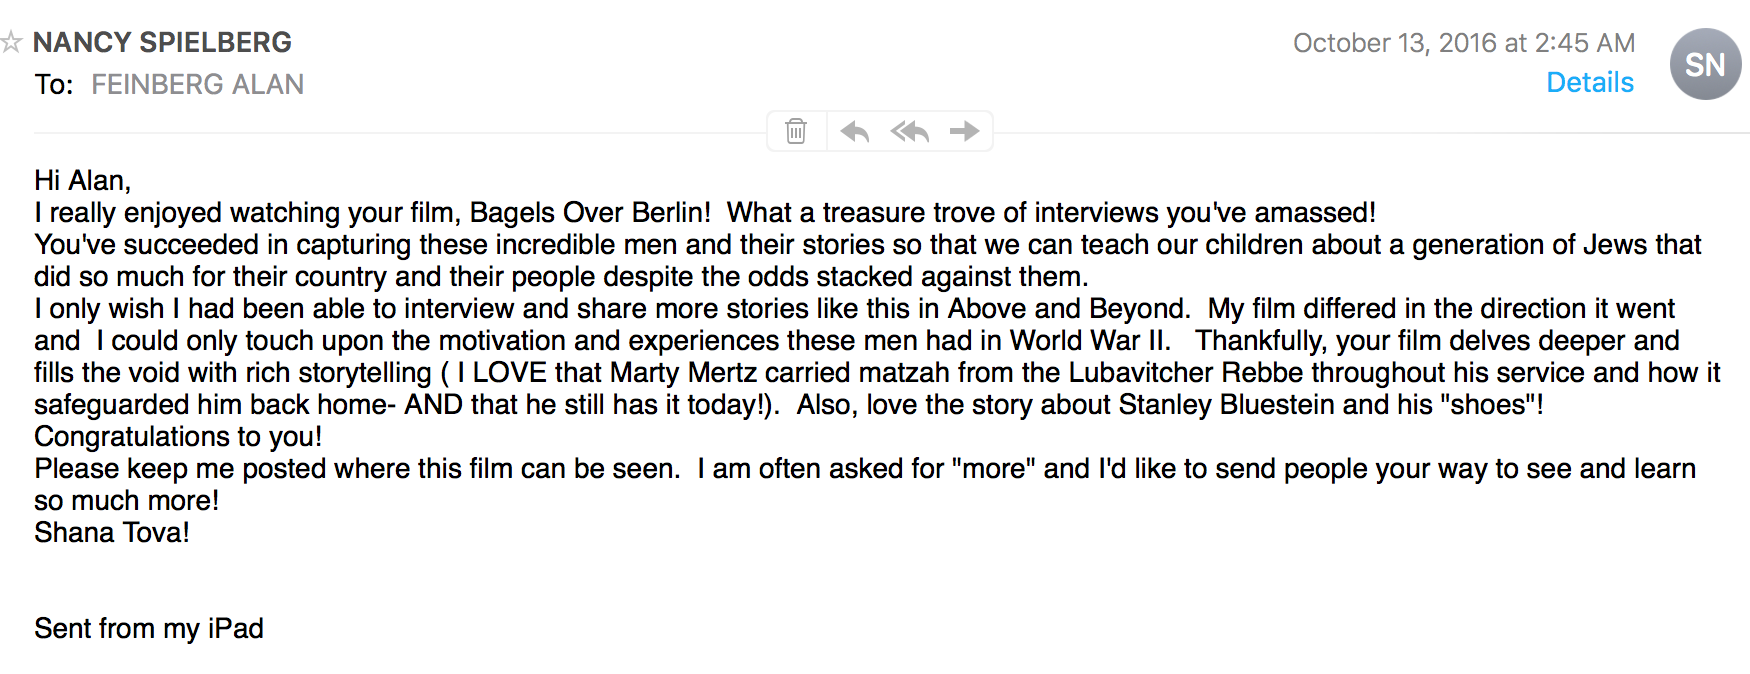 Email from Nancy Spielberg